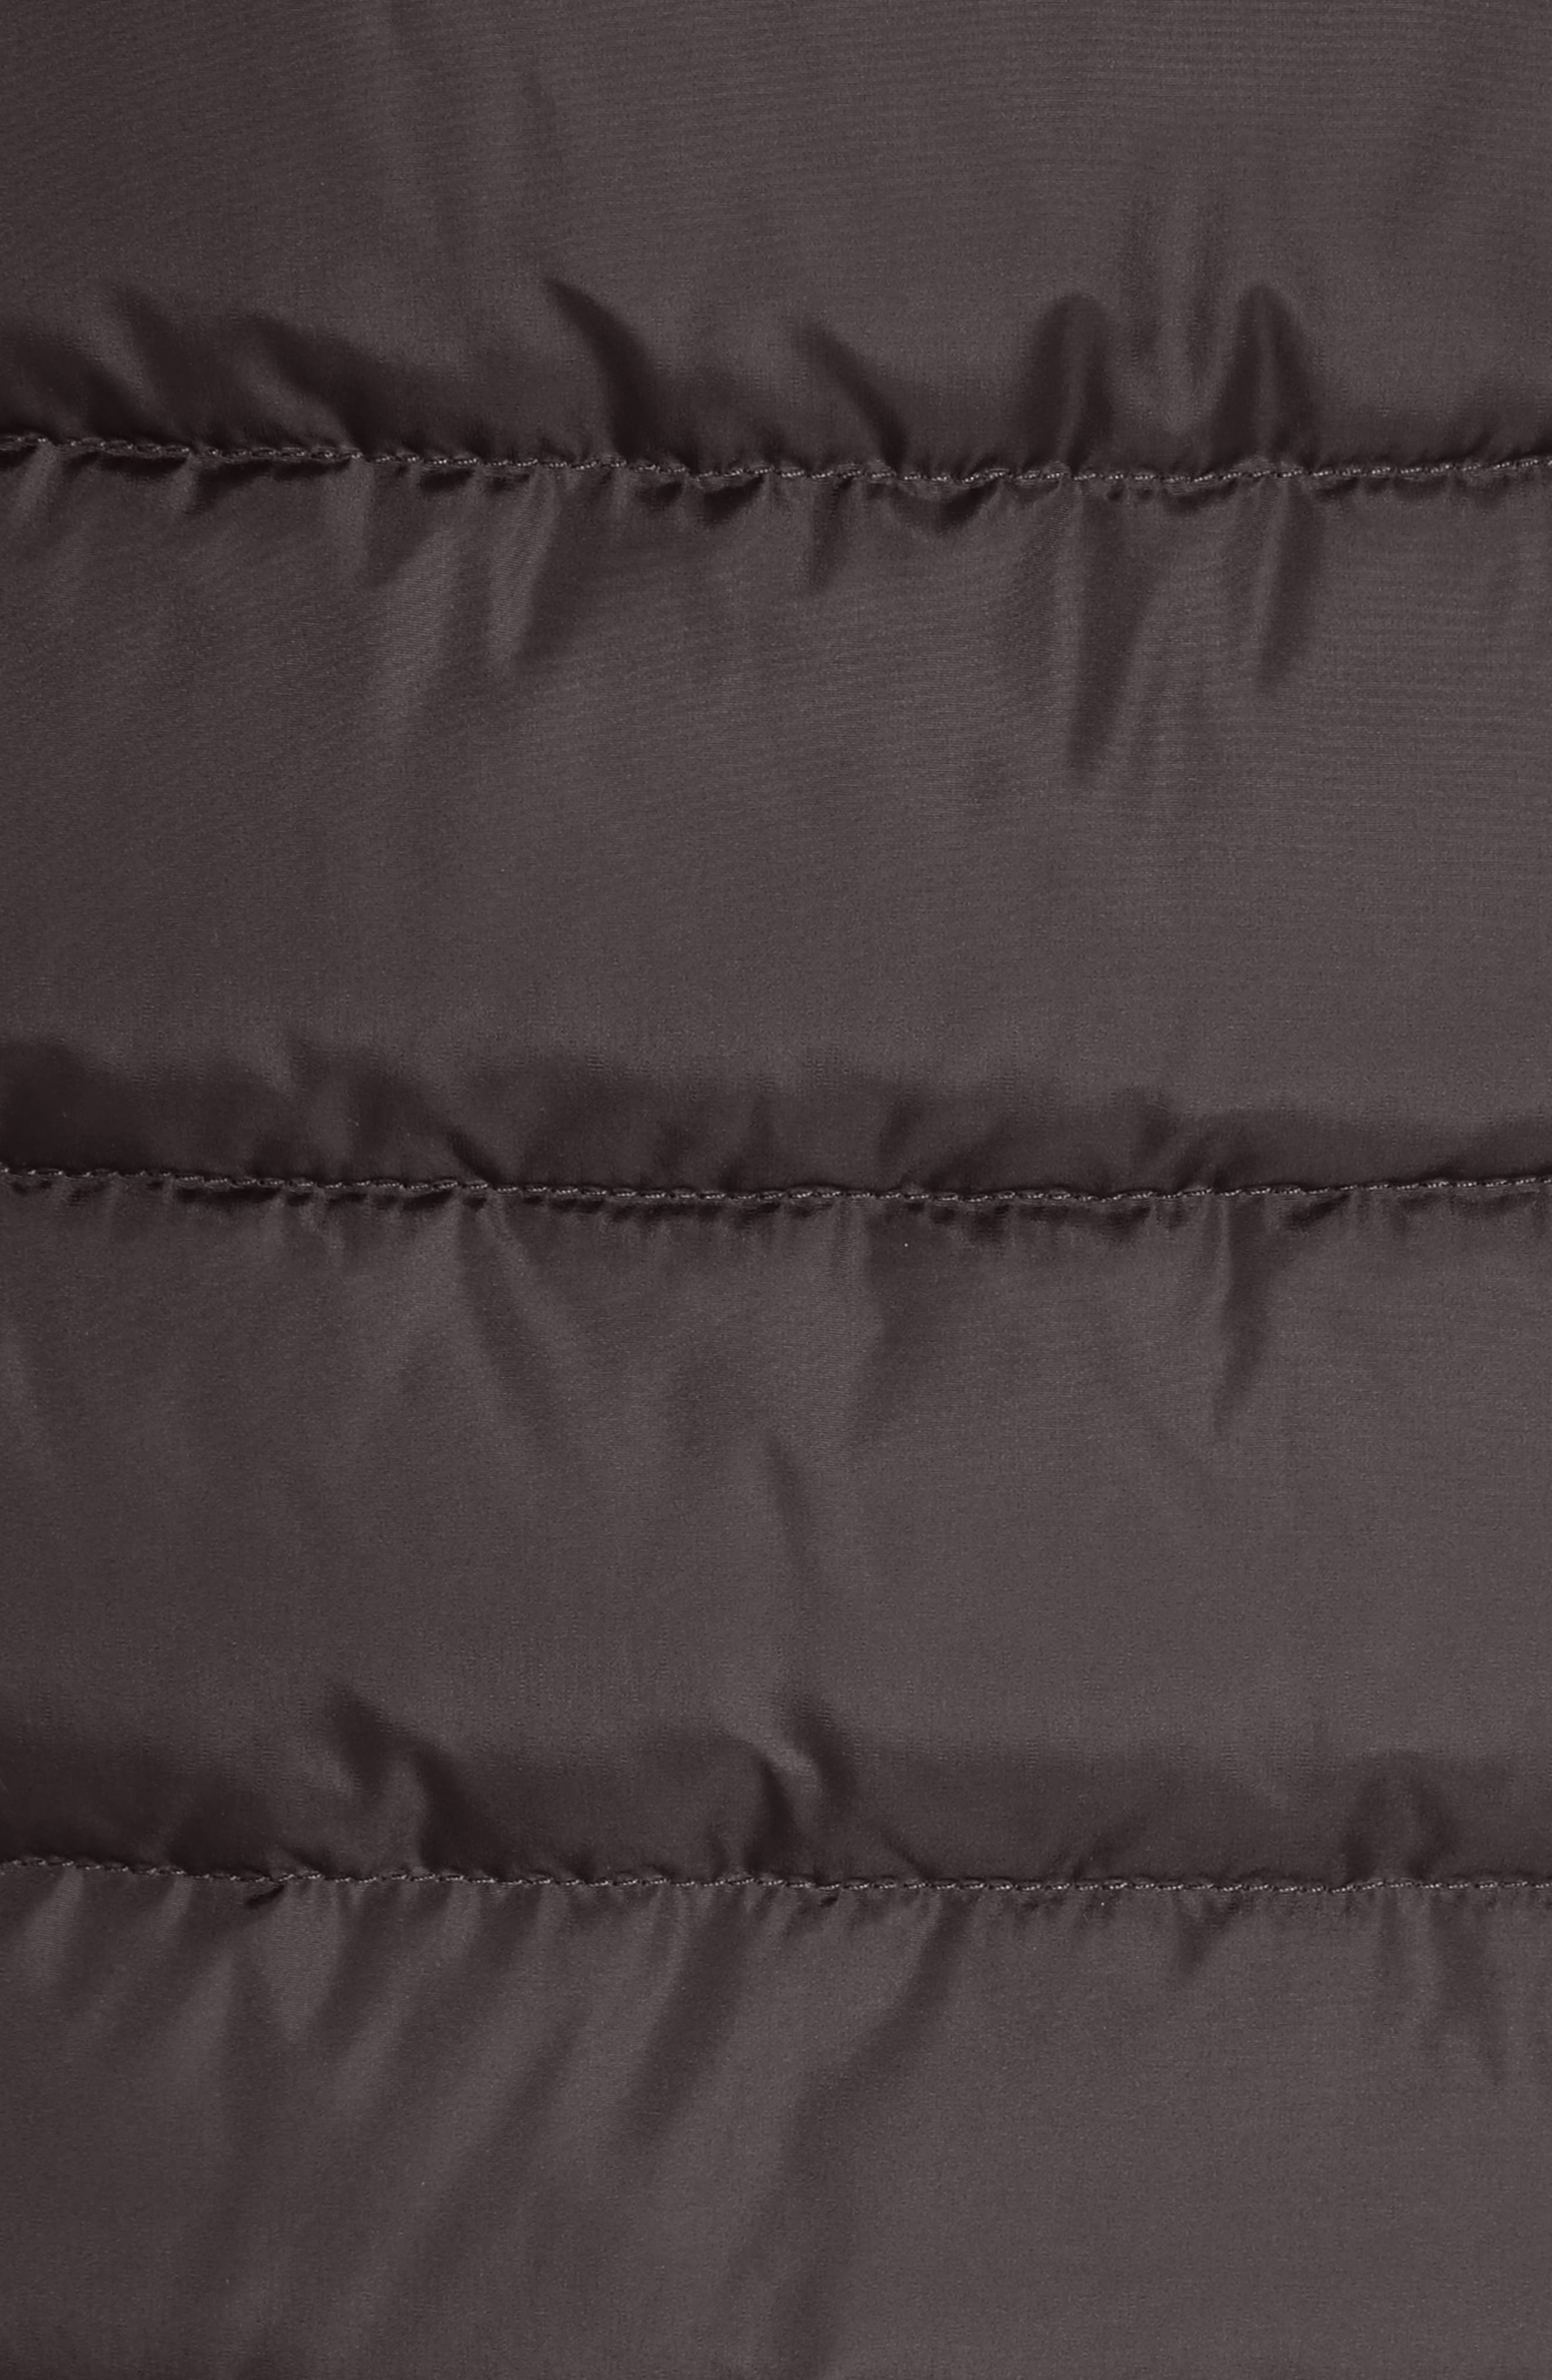 Taleve Hooded Quilted Down Coat,                             Alternate thumbnail 6, color,                             GREY